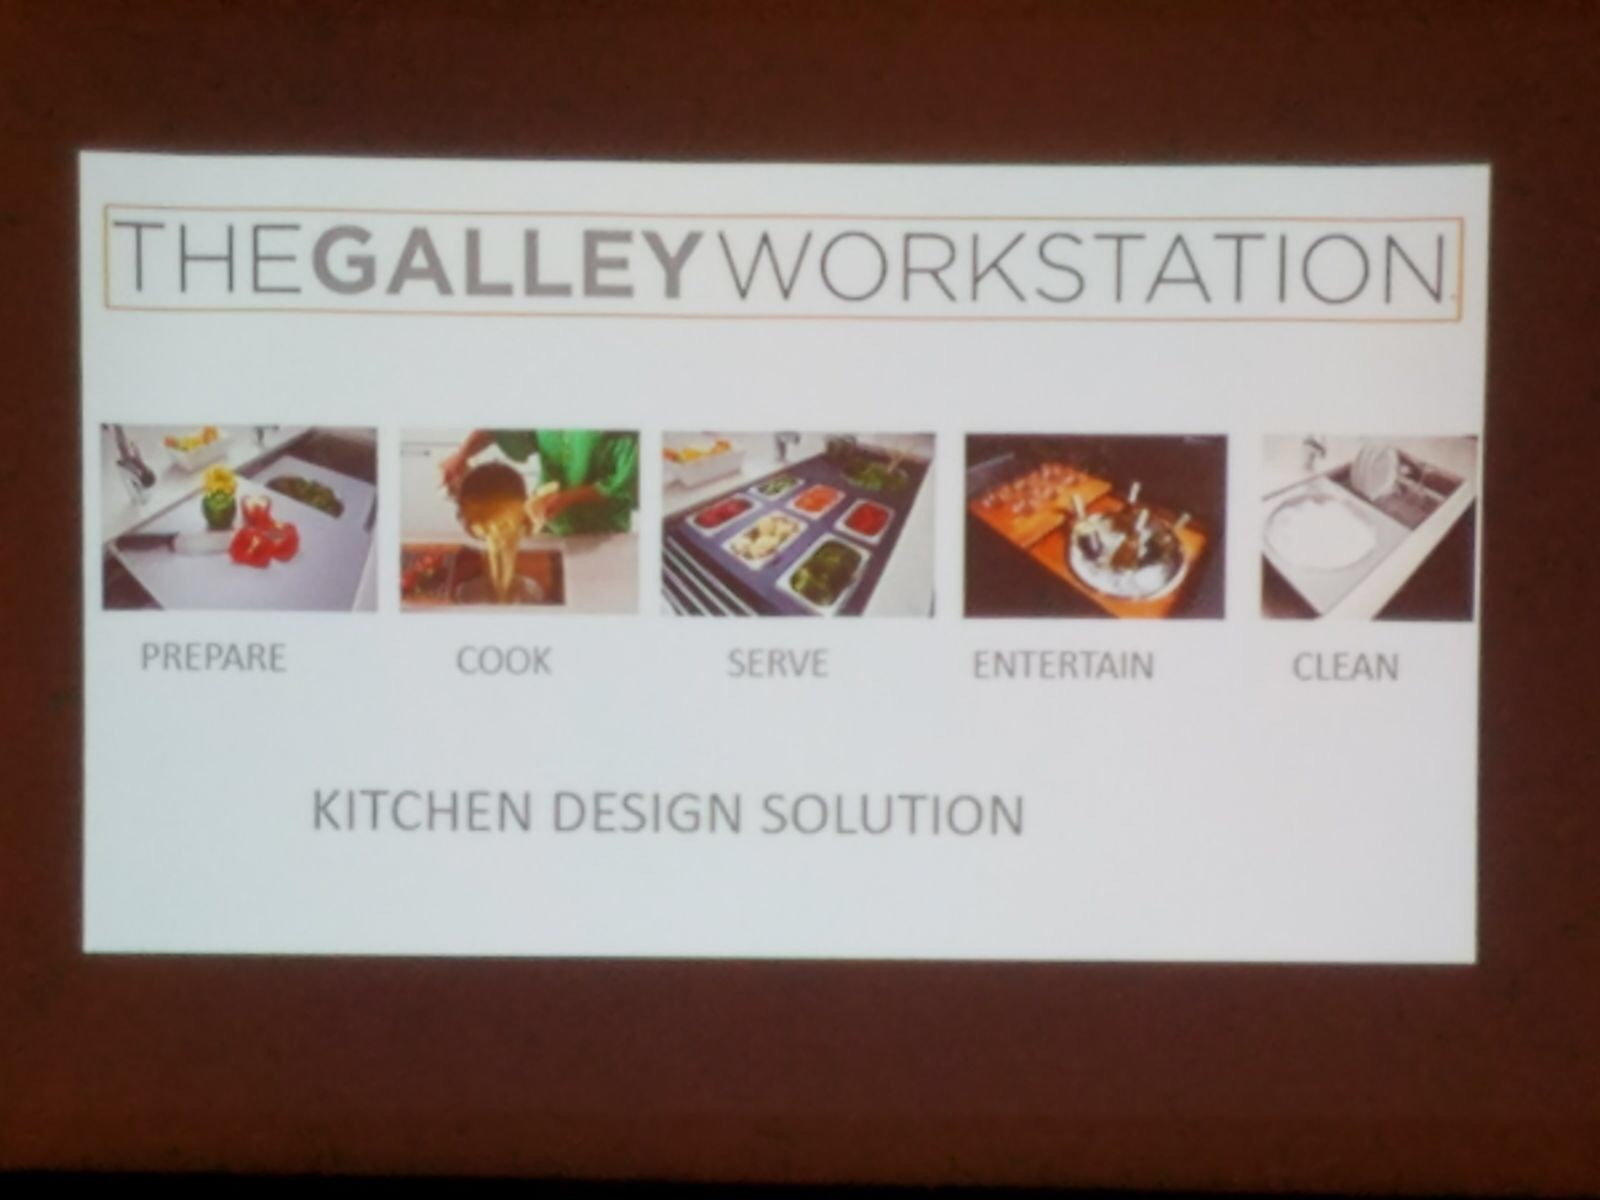 Galley Workstation presentation at SEN Fall 2017 Conference